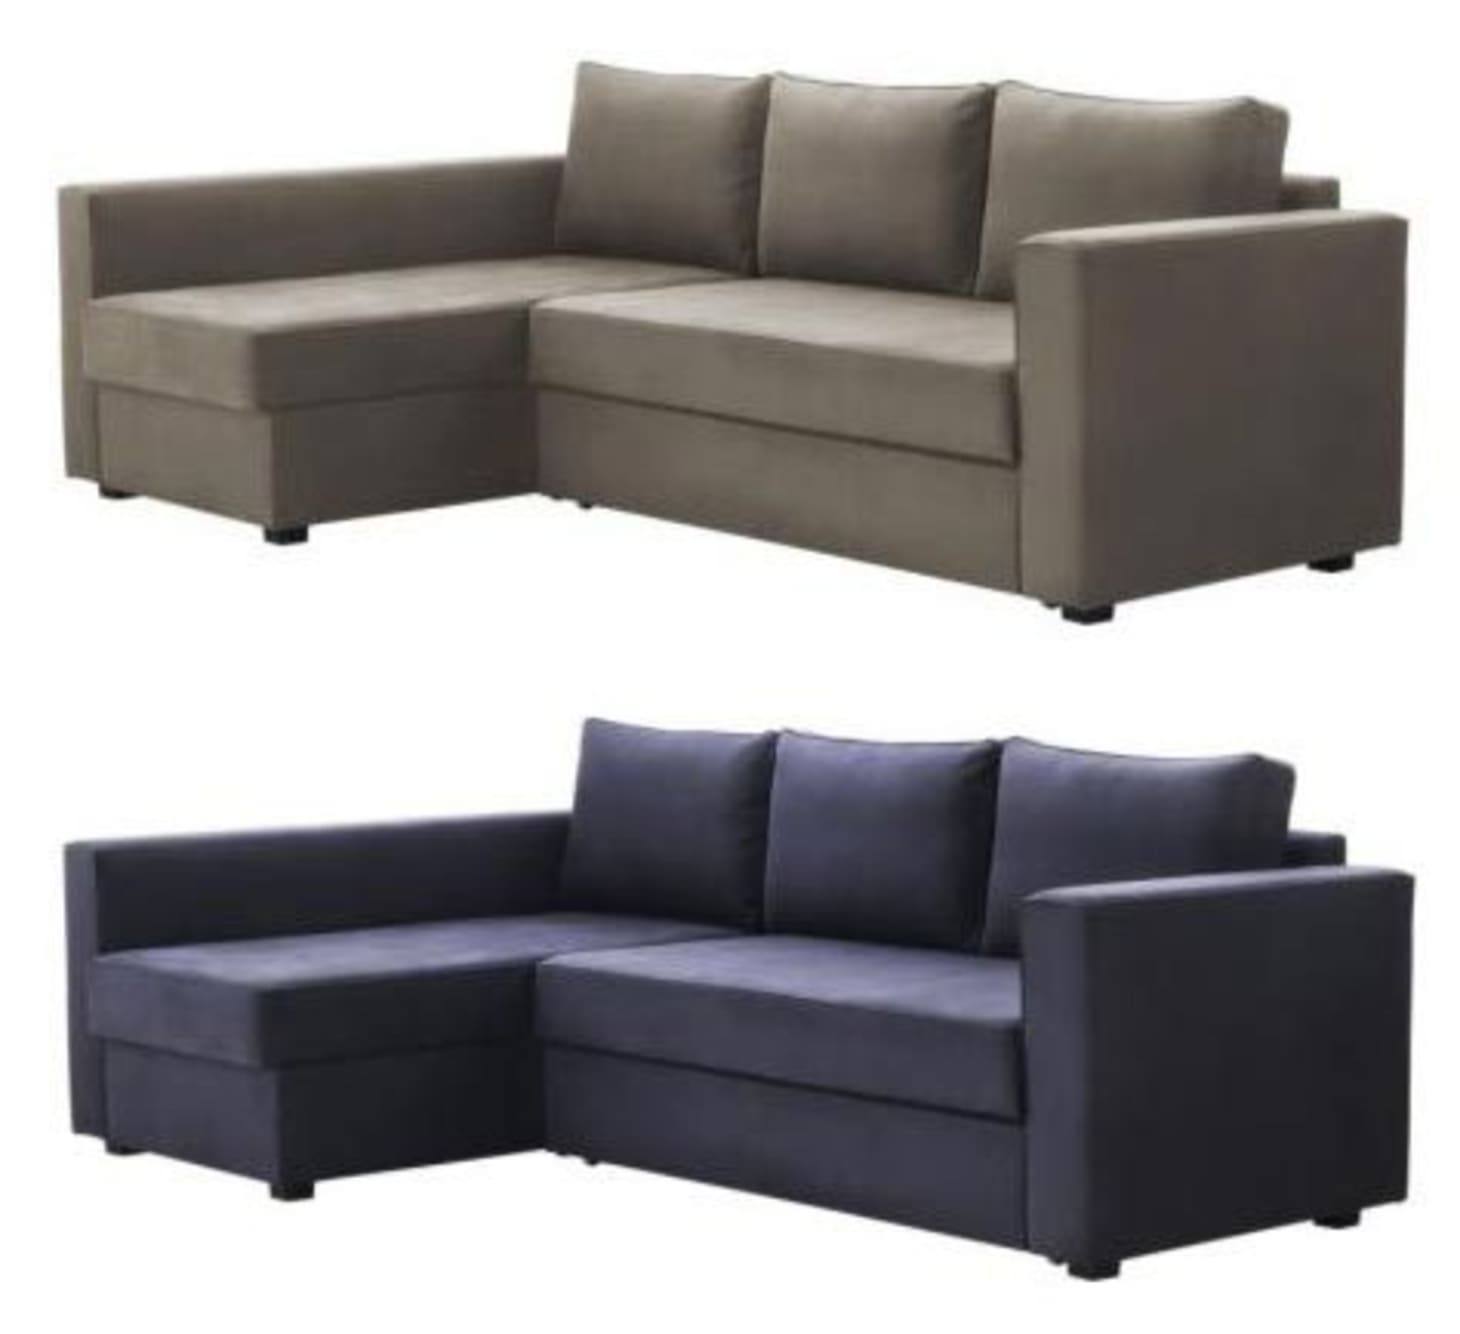 buy online 6596e 38f7c MANSTAD Sectional Sofa Bed & Storage from IKEA | Apartment ...